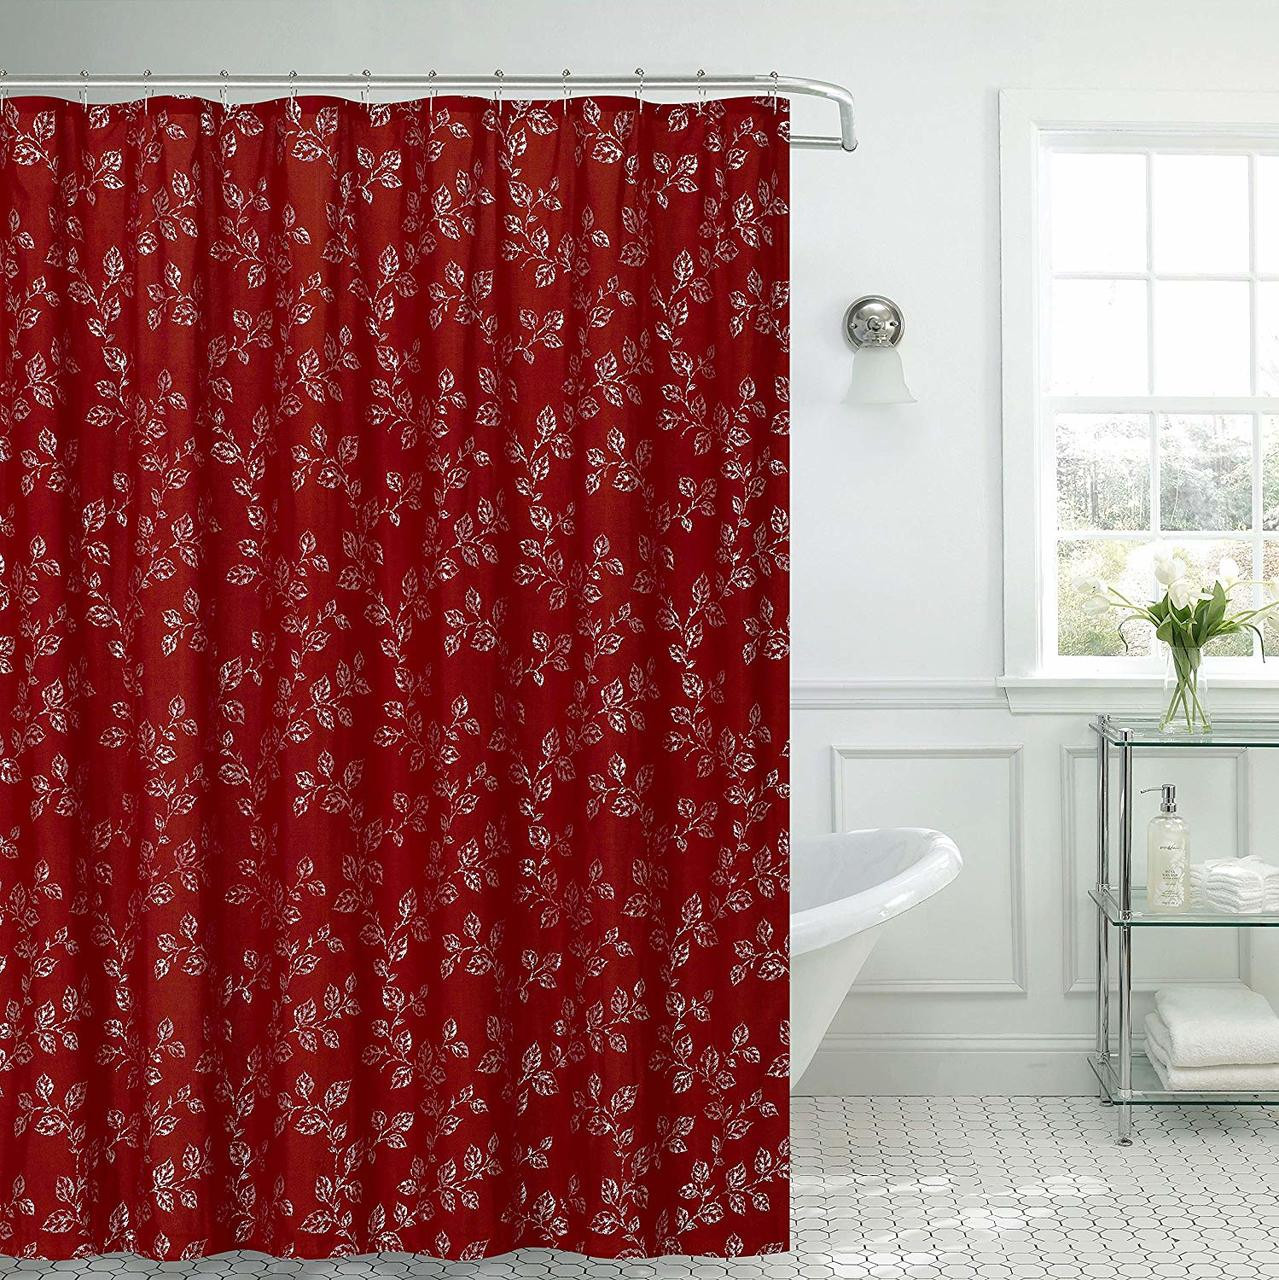 Shower Curtain Pvc Free Peva Printed Fun Colorful Paisley Floral